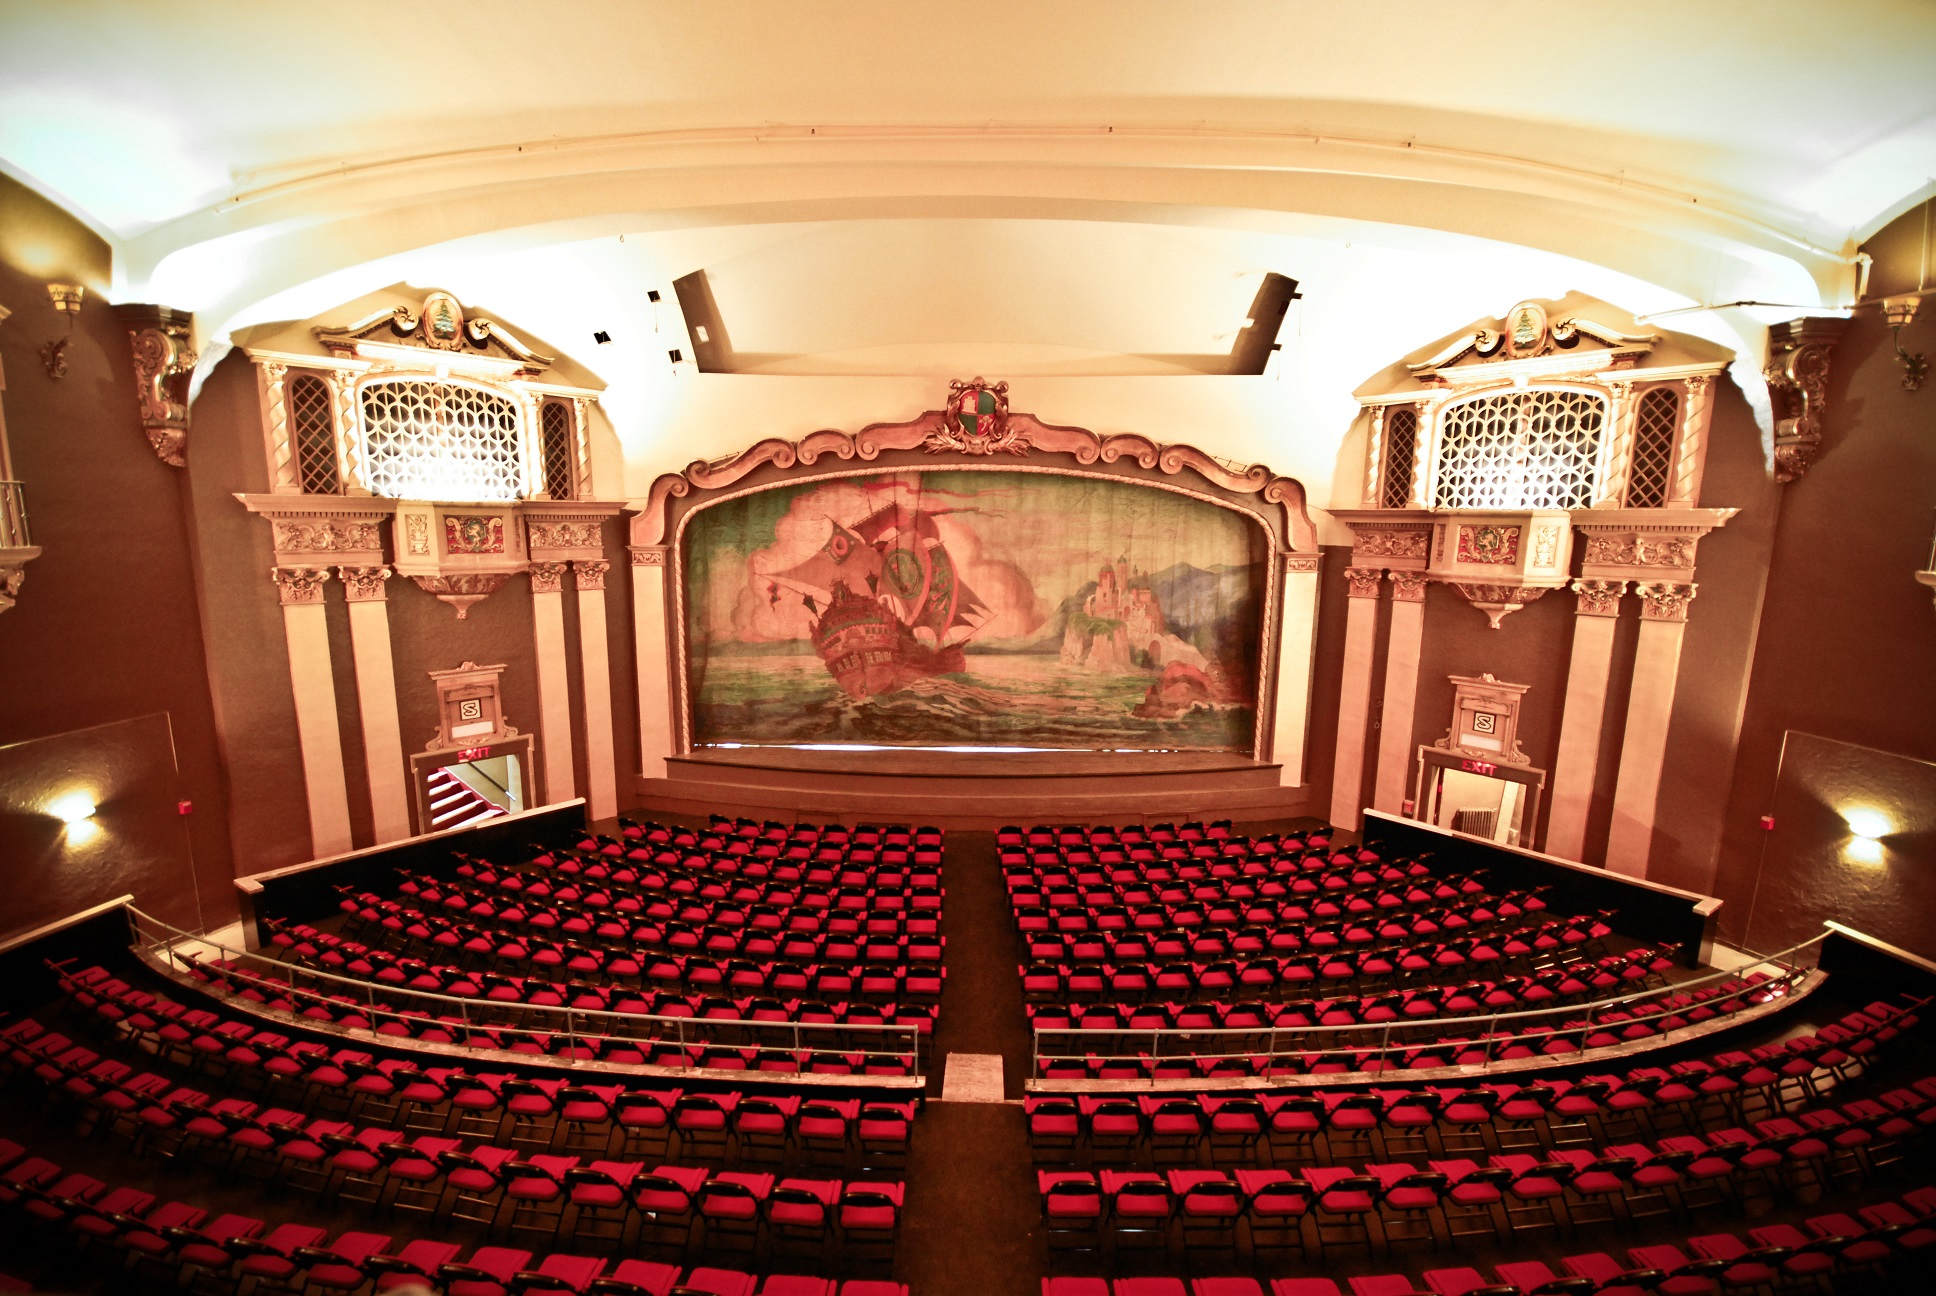 State Theatre in Portland, Maine Celebrates 90th Birthday